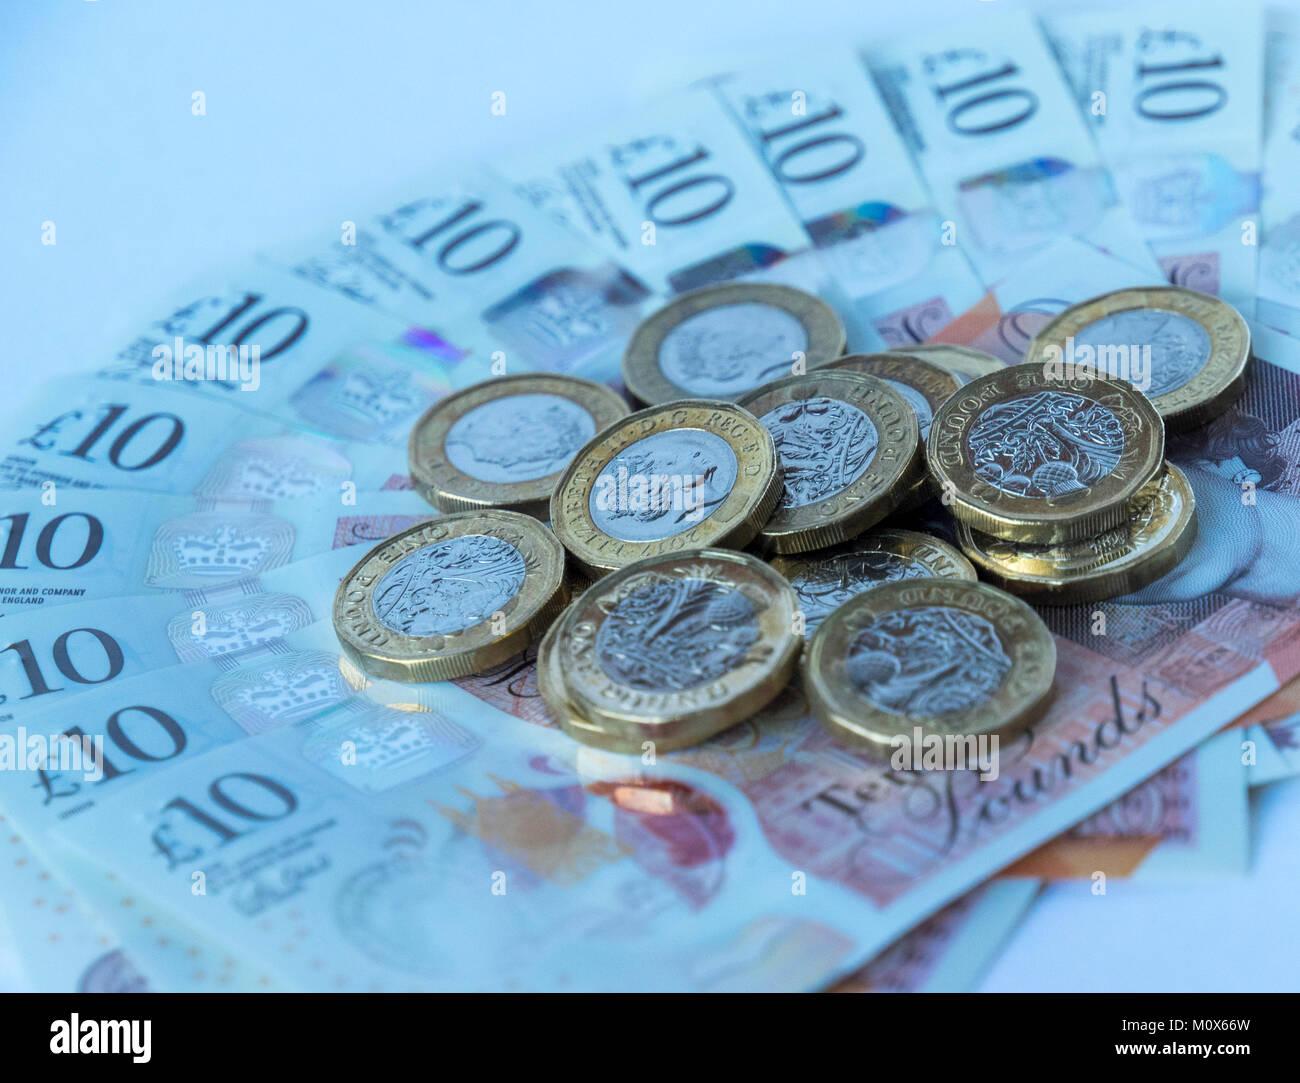 Several new British pound coins lying randomly on a fanned out bed of new polymer ten pound sterling notes - Stock Image